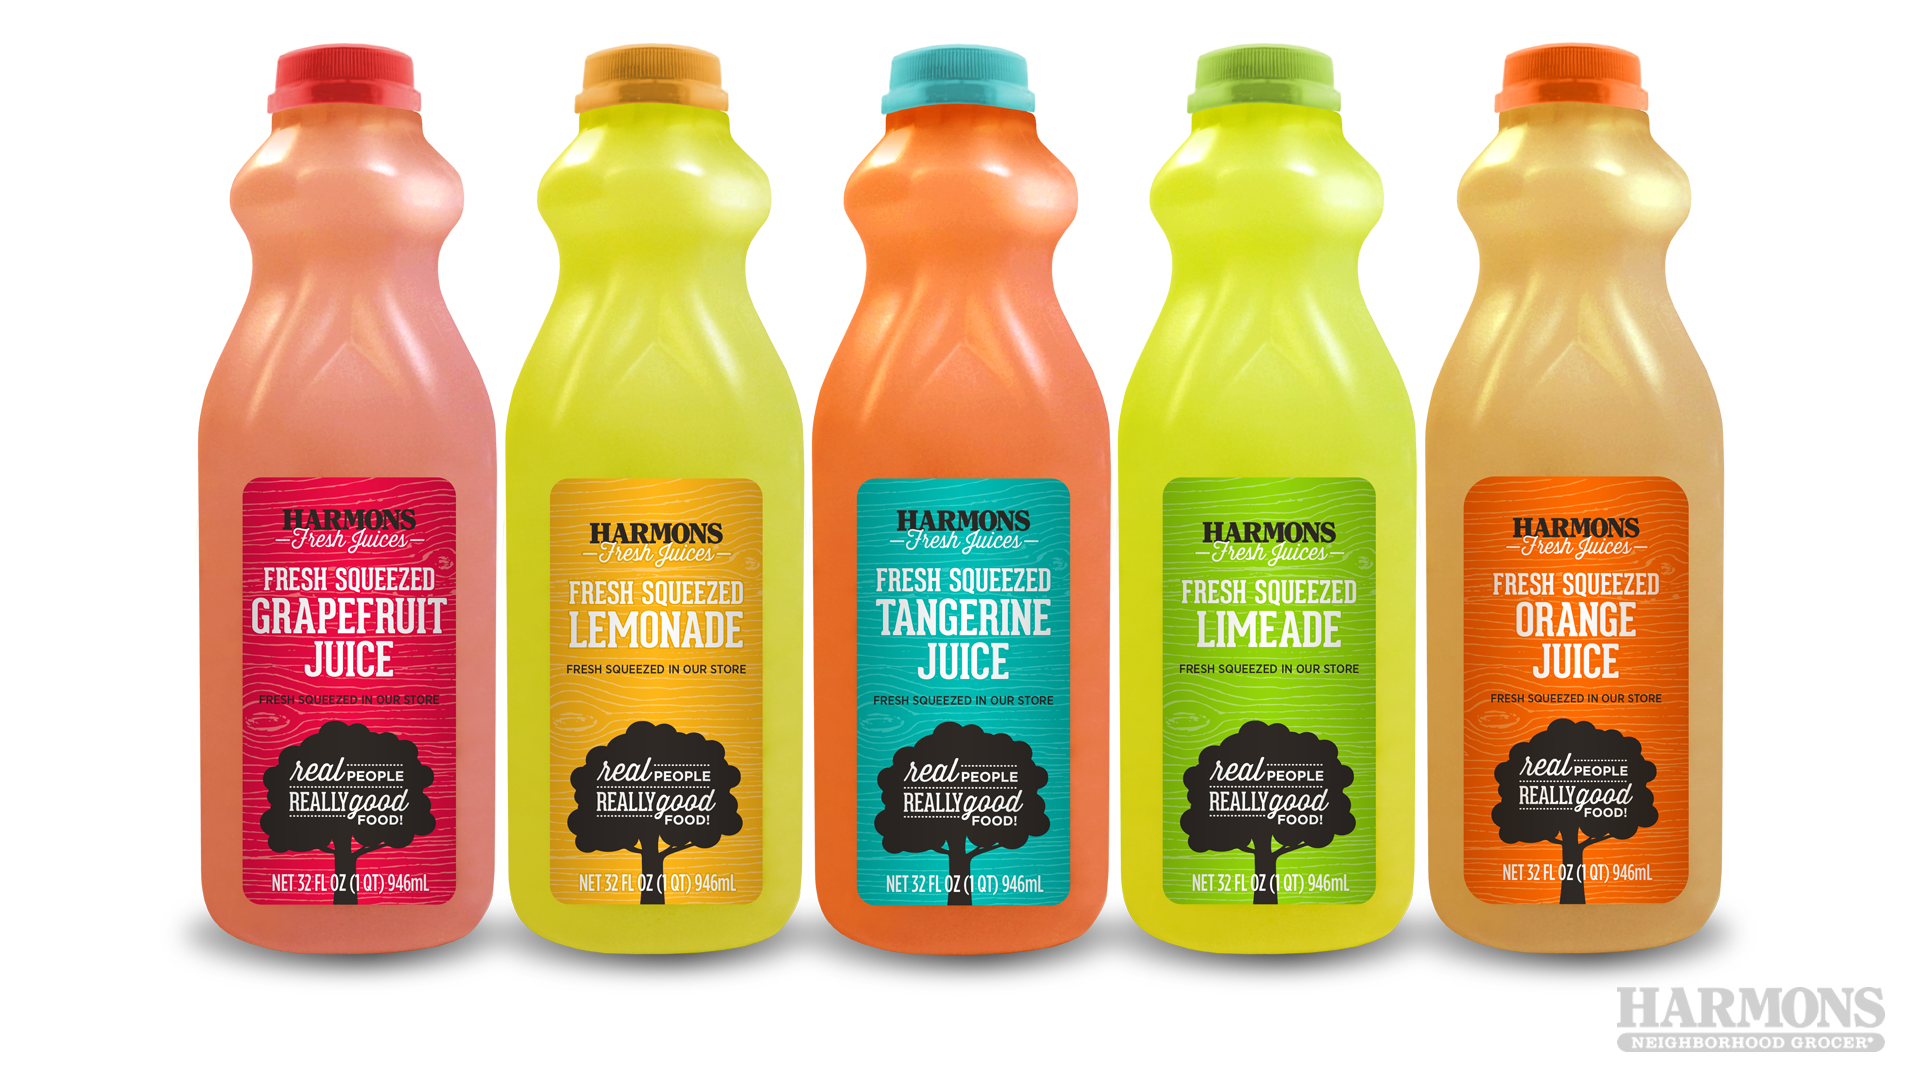 HG052_FreshJuices_PhotoRendering_Composite copy.png